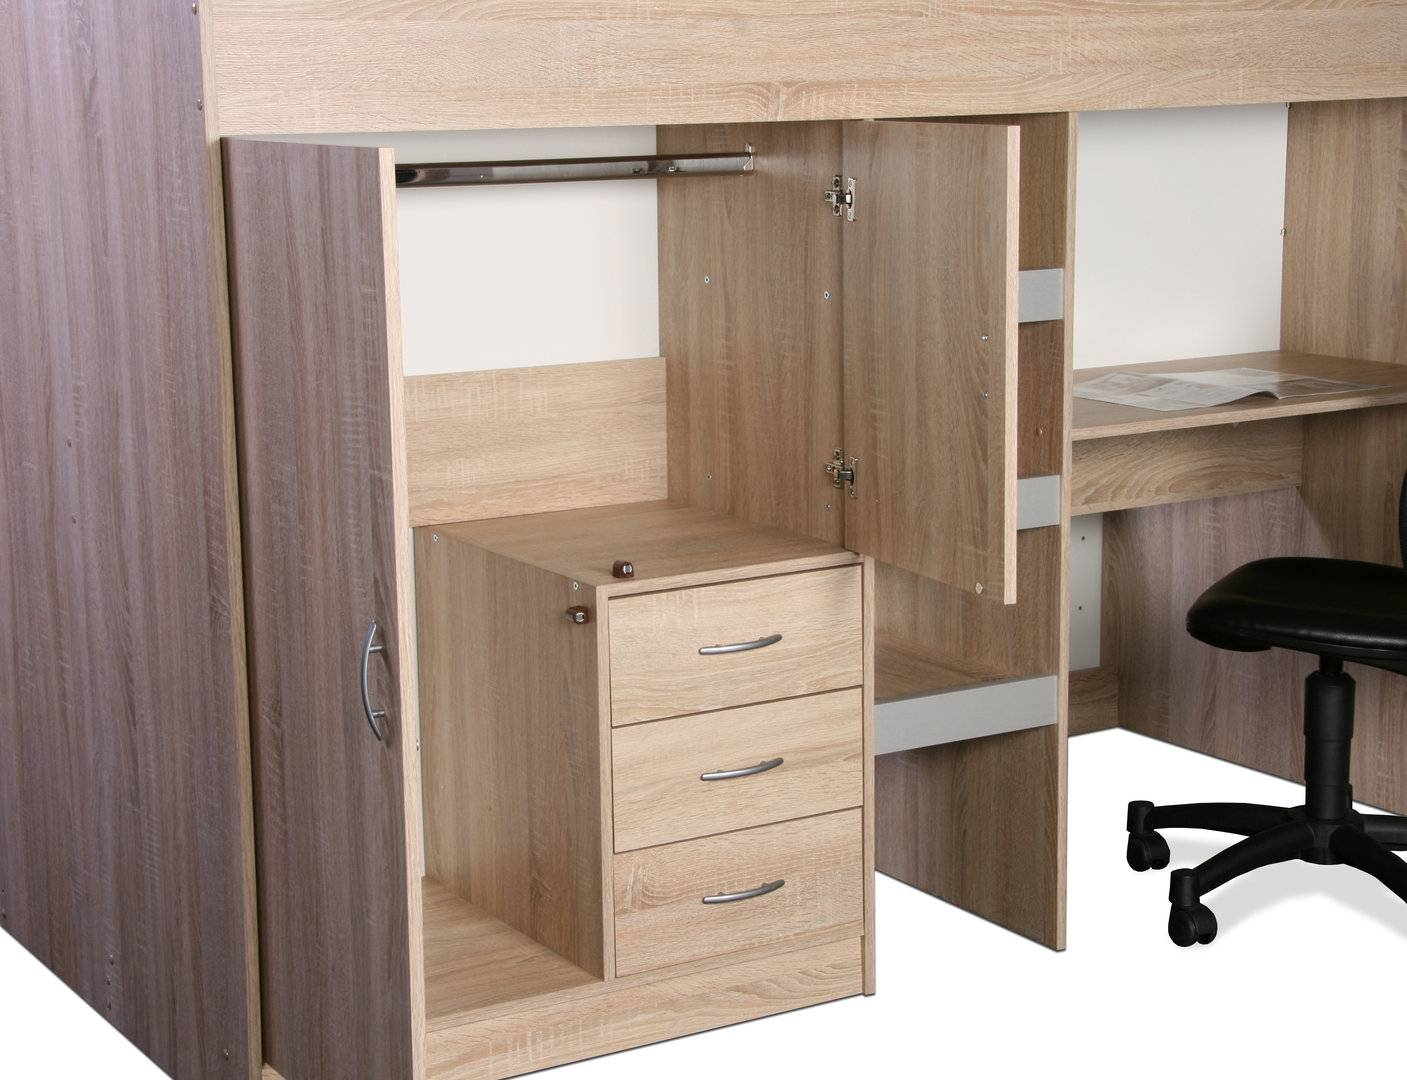 Brighton High Cabin Sleeper Bed Oak And Grey - Rutland Furniture throughout High Sleeper With Wardrobes and Desk (Image 1 of 15)